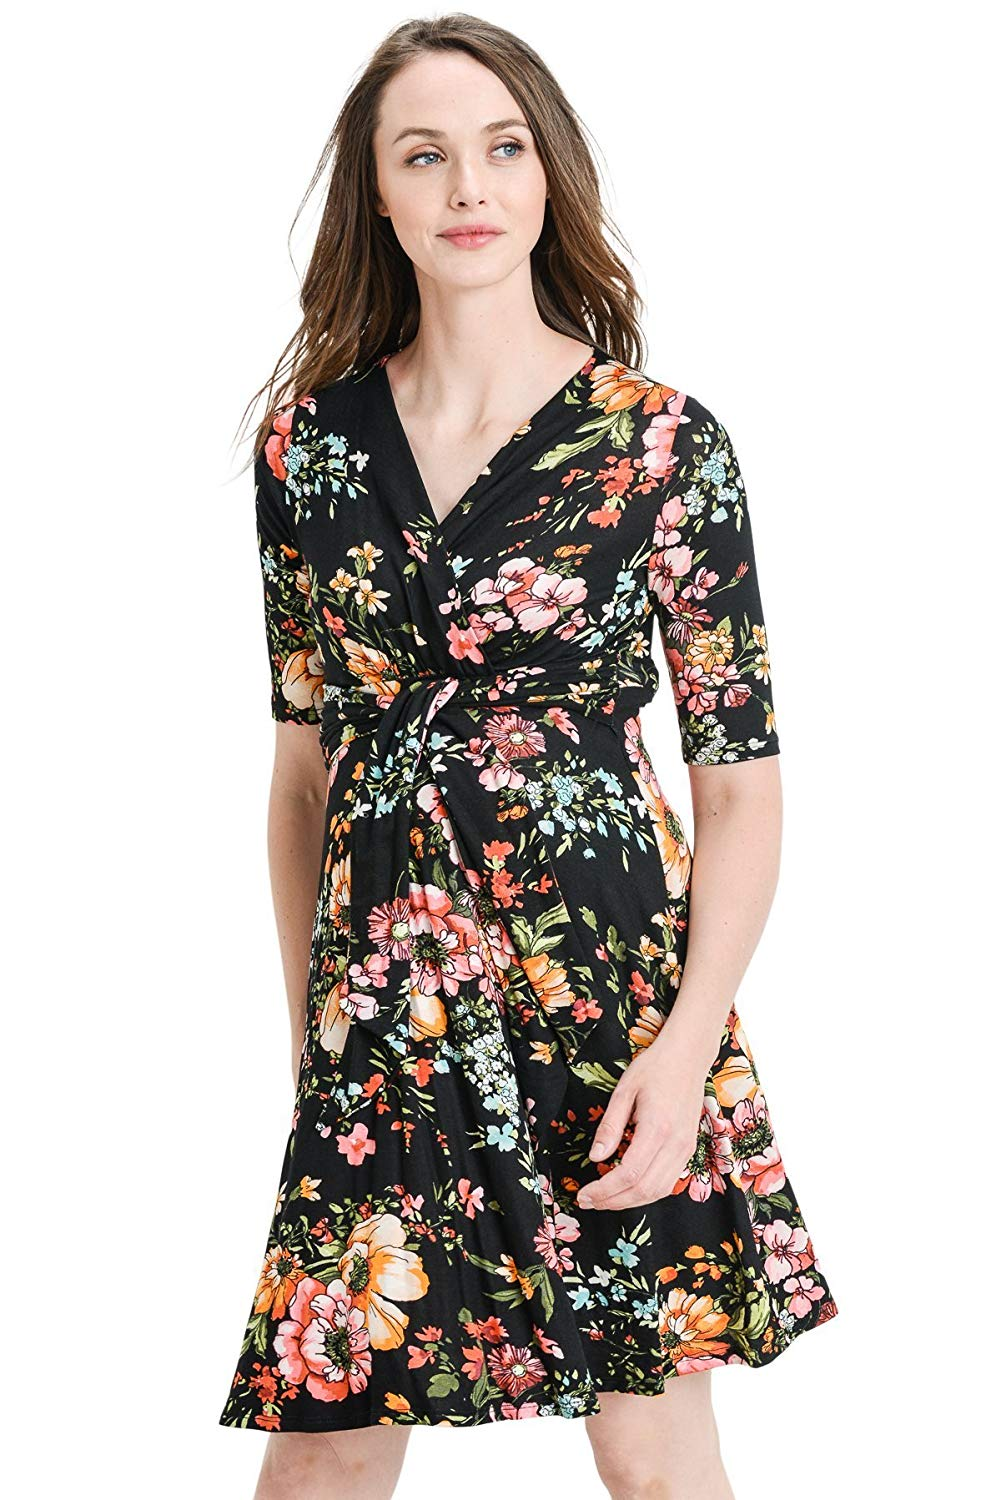 Black Floral Faux Wrap Nursing and Maternity Dress - Mommylicious